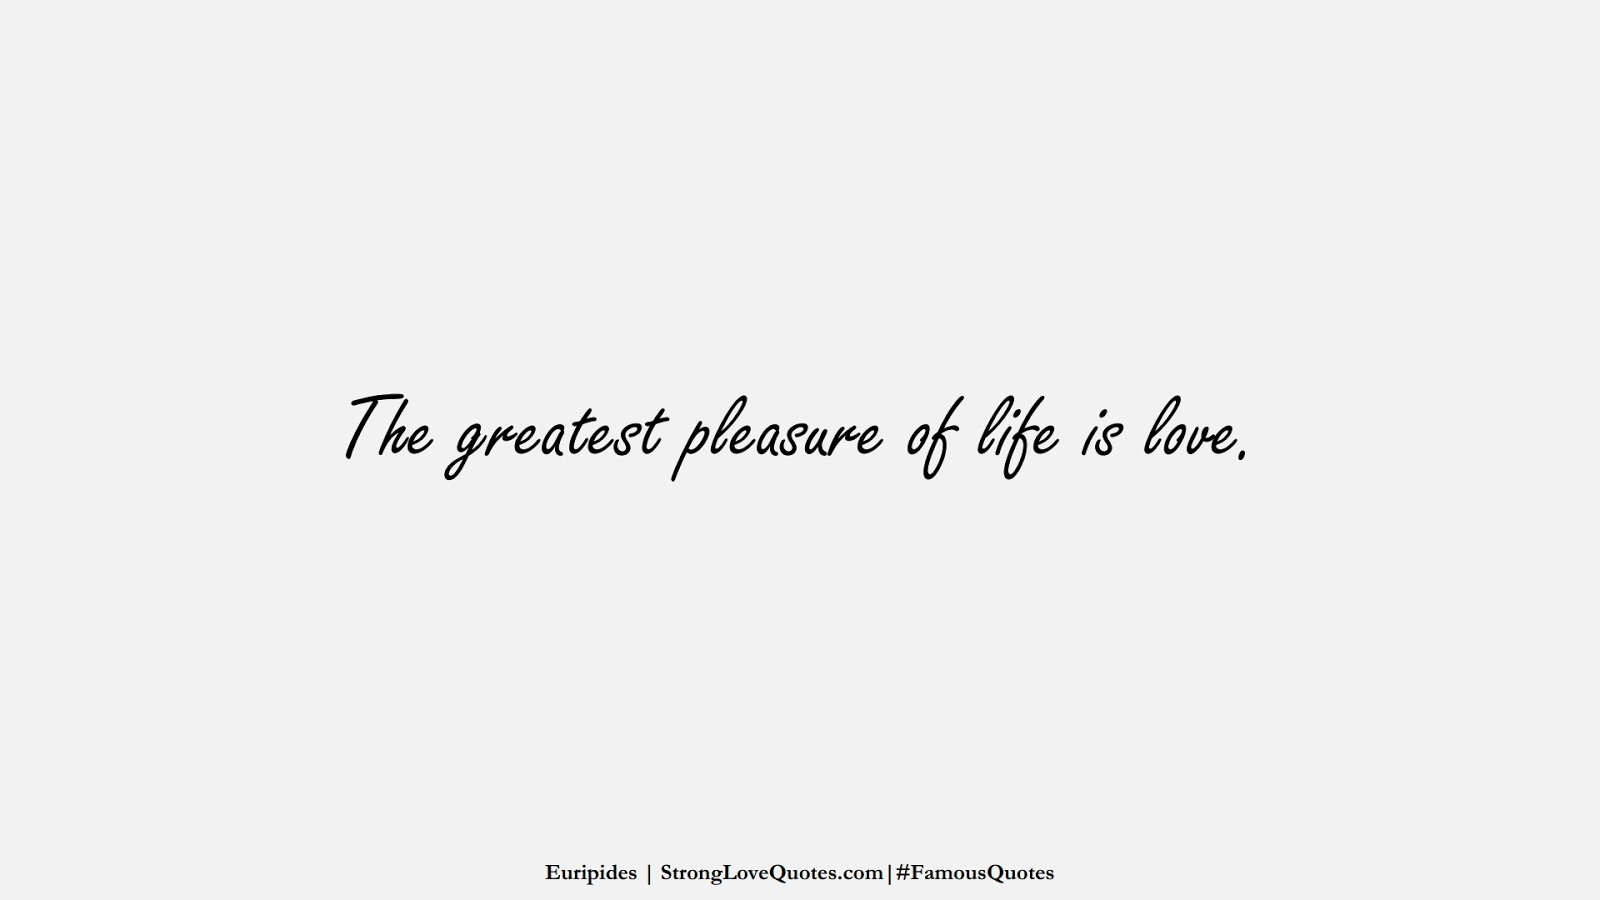 The greatest pleasure of life is love. (Euripides);  #FamousQuotes